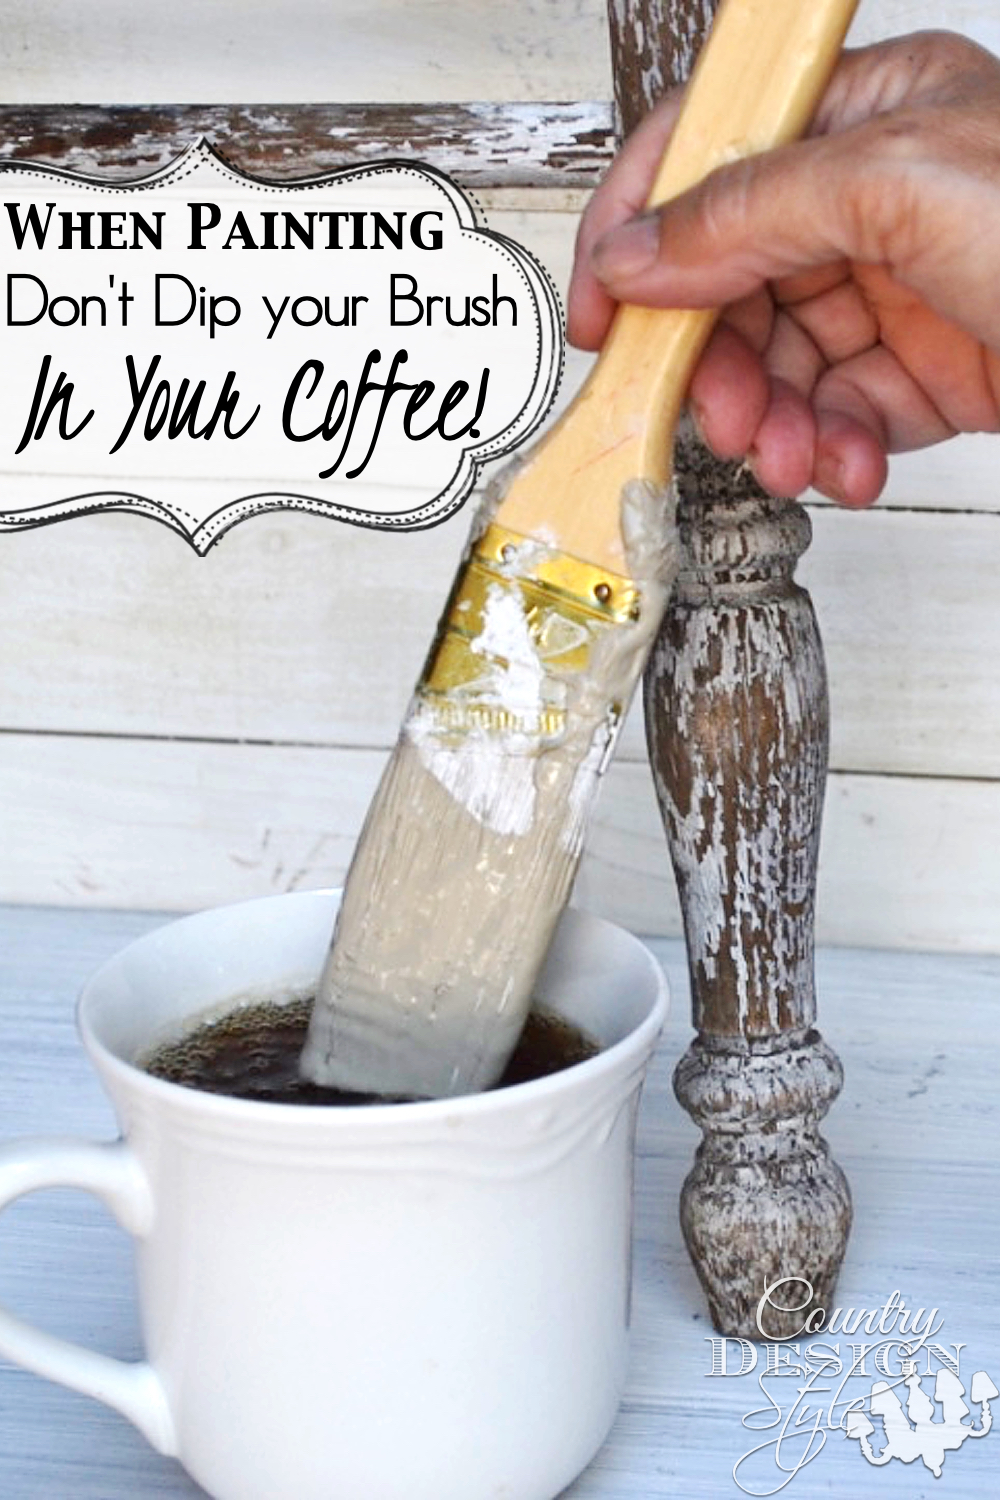 How many times have you dipped your brush in your coffee cup?? I've stopped counting. I couldn't paint my DIY projects without coffee. More chair painting tips on the website. Click to read more. Country Design Style